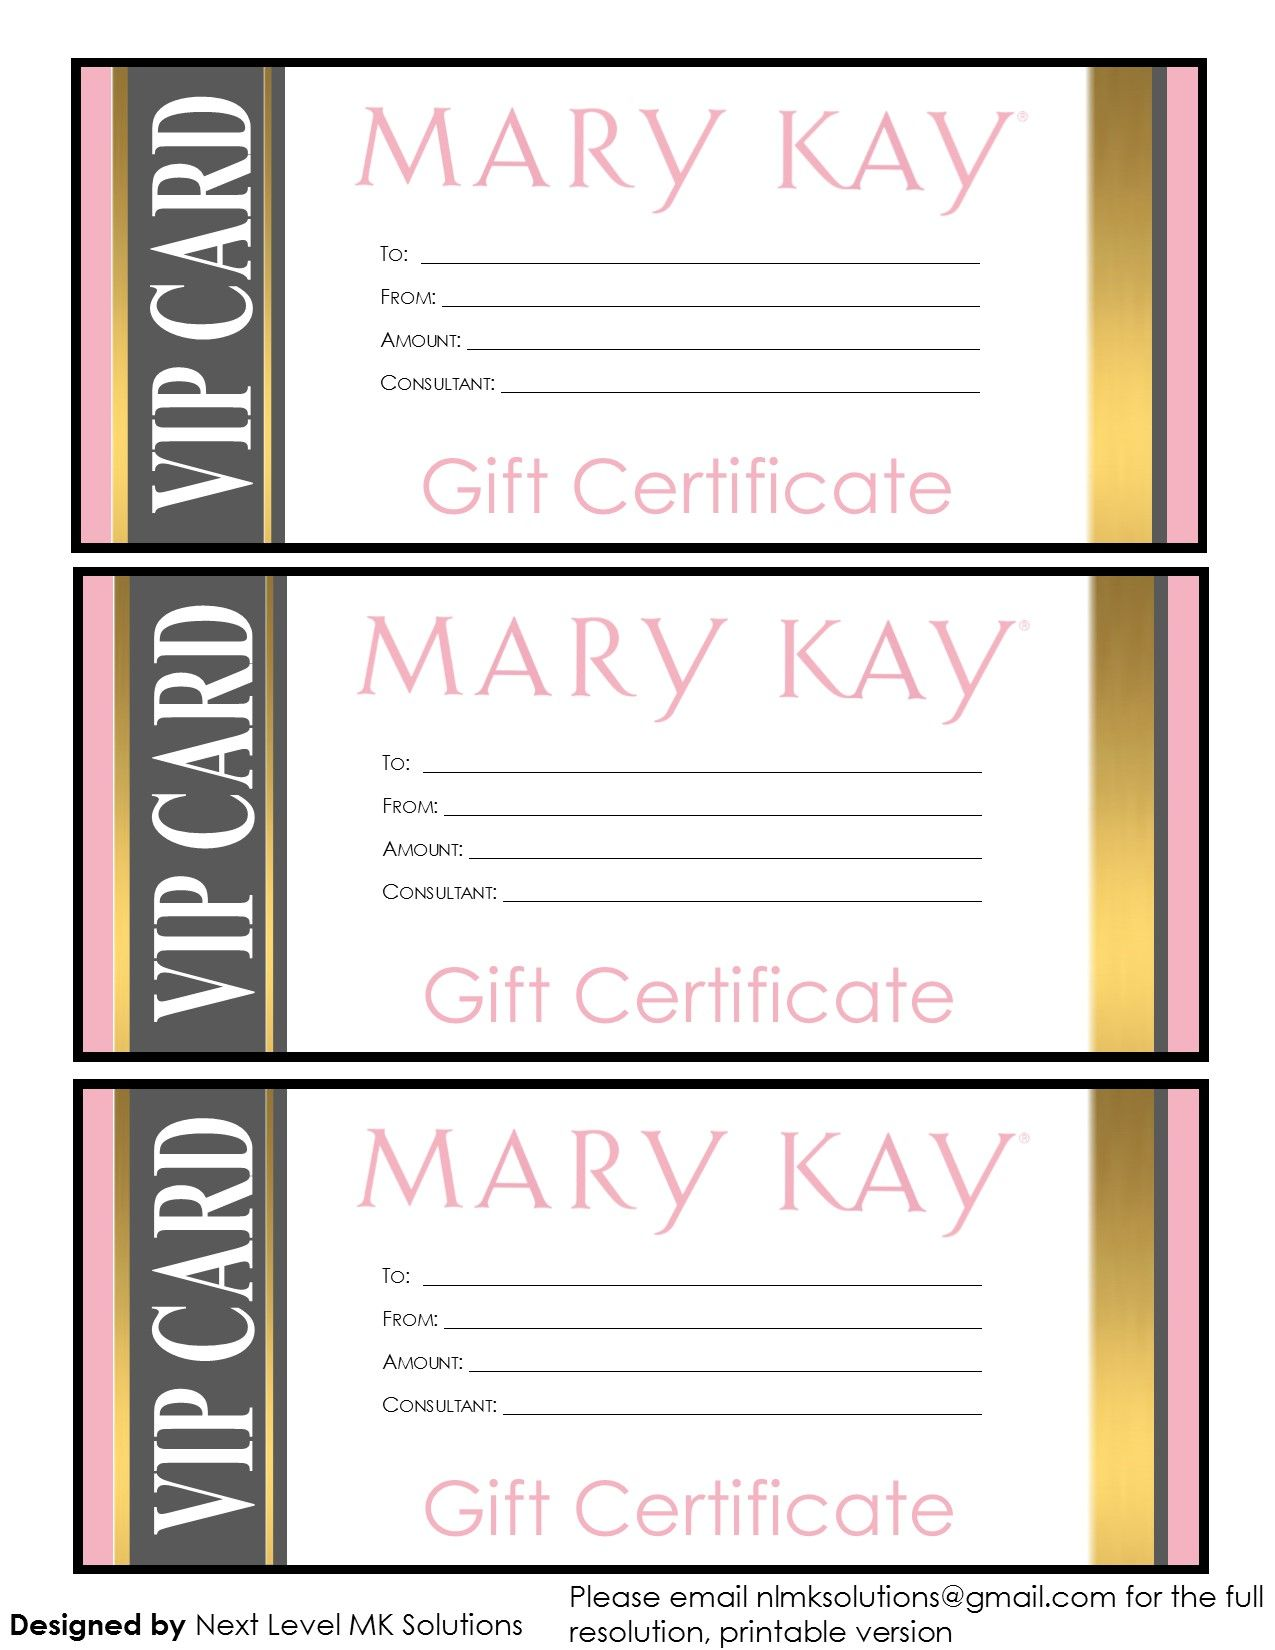 mary kay gift certificates please email for the full pdf printable